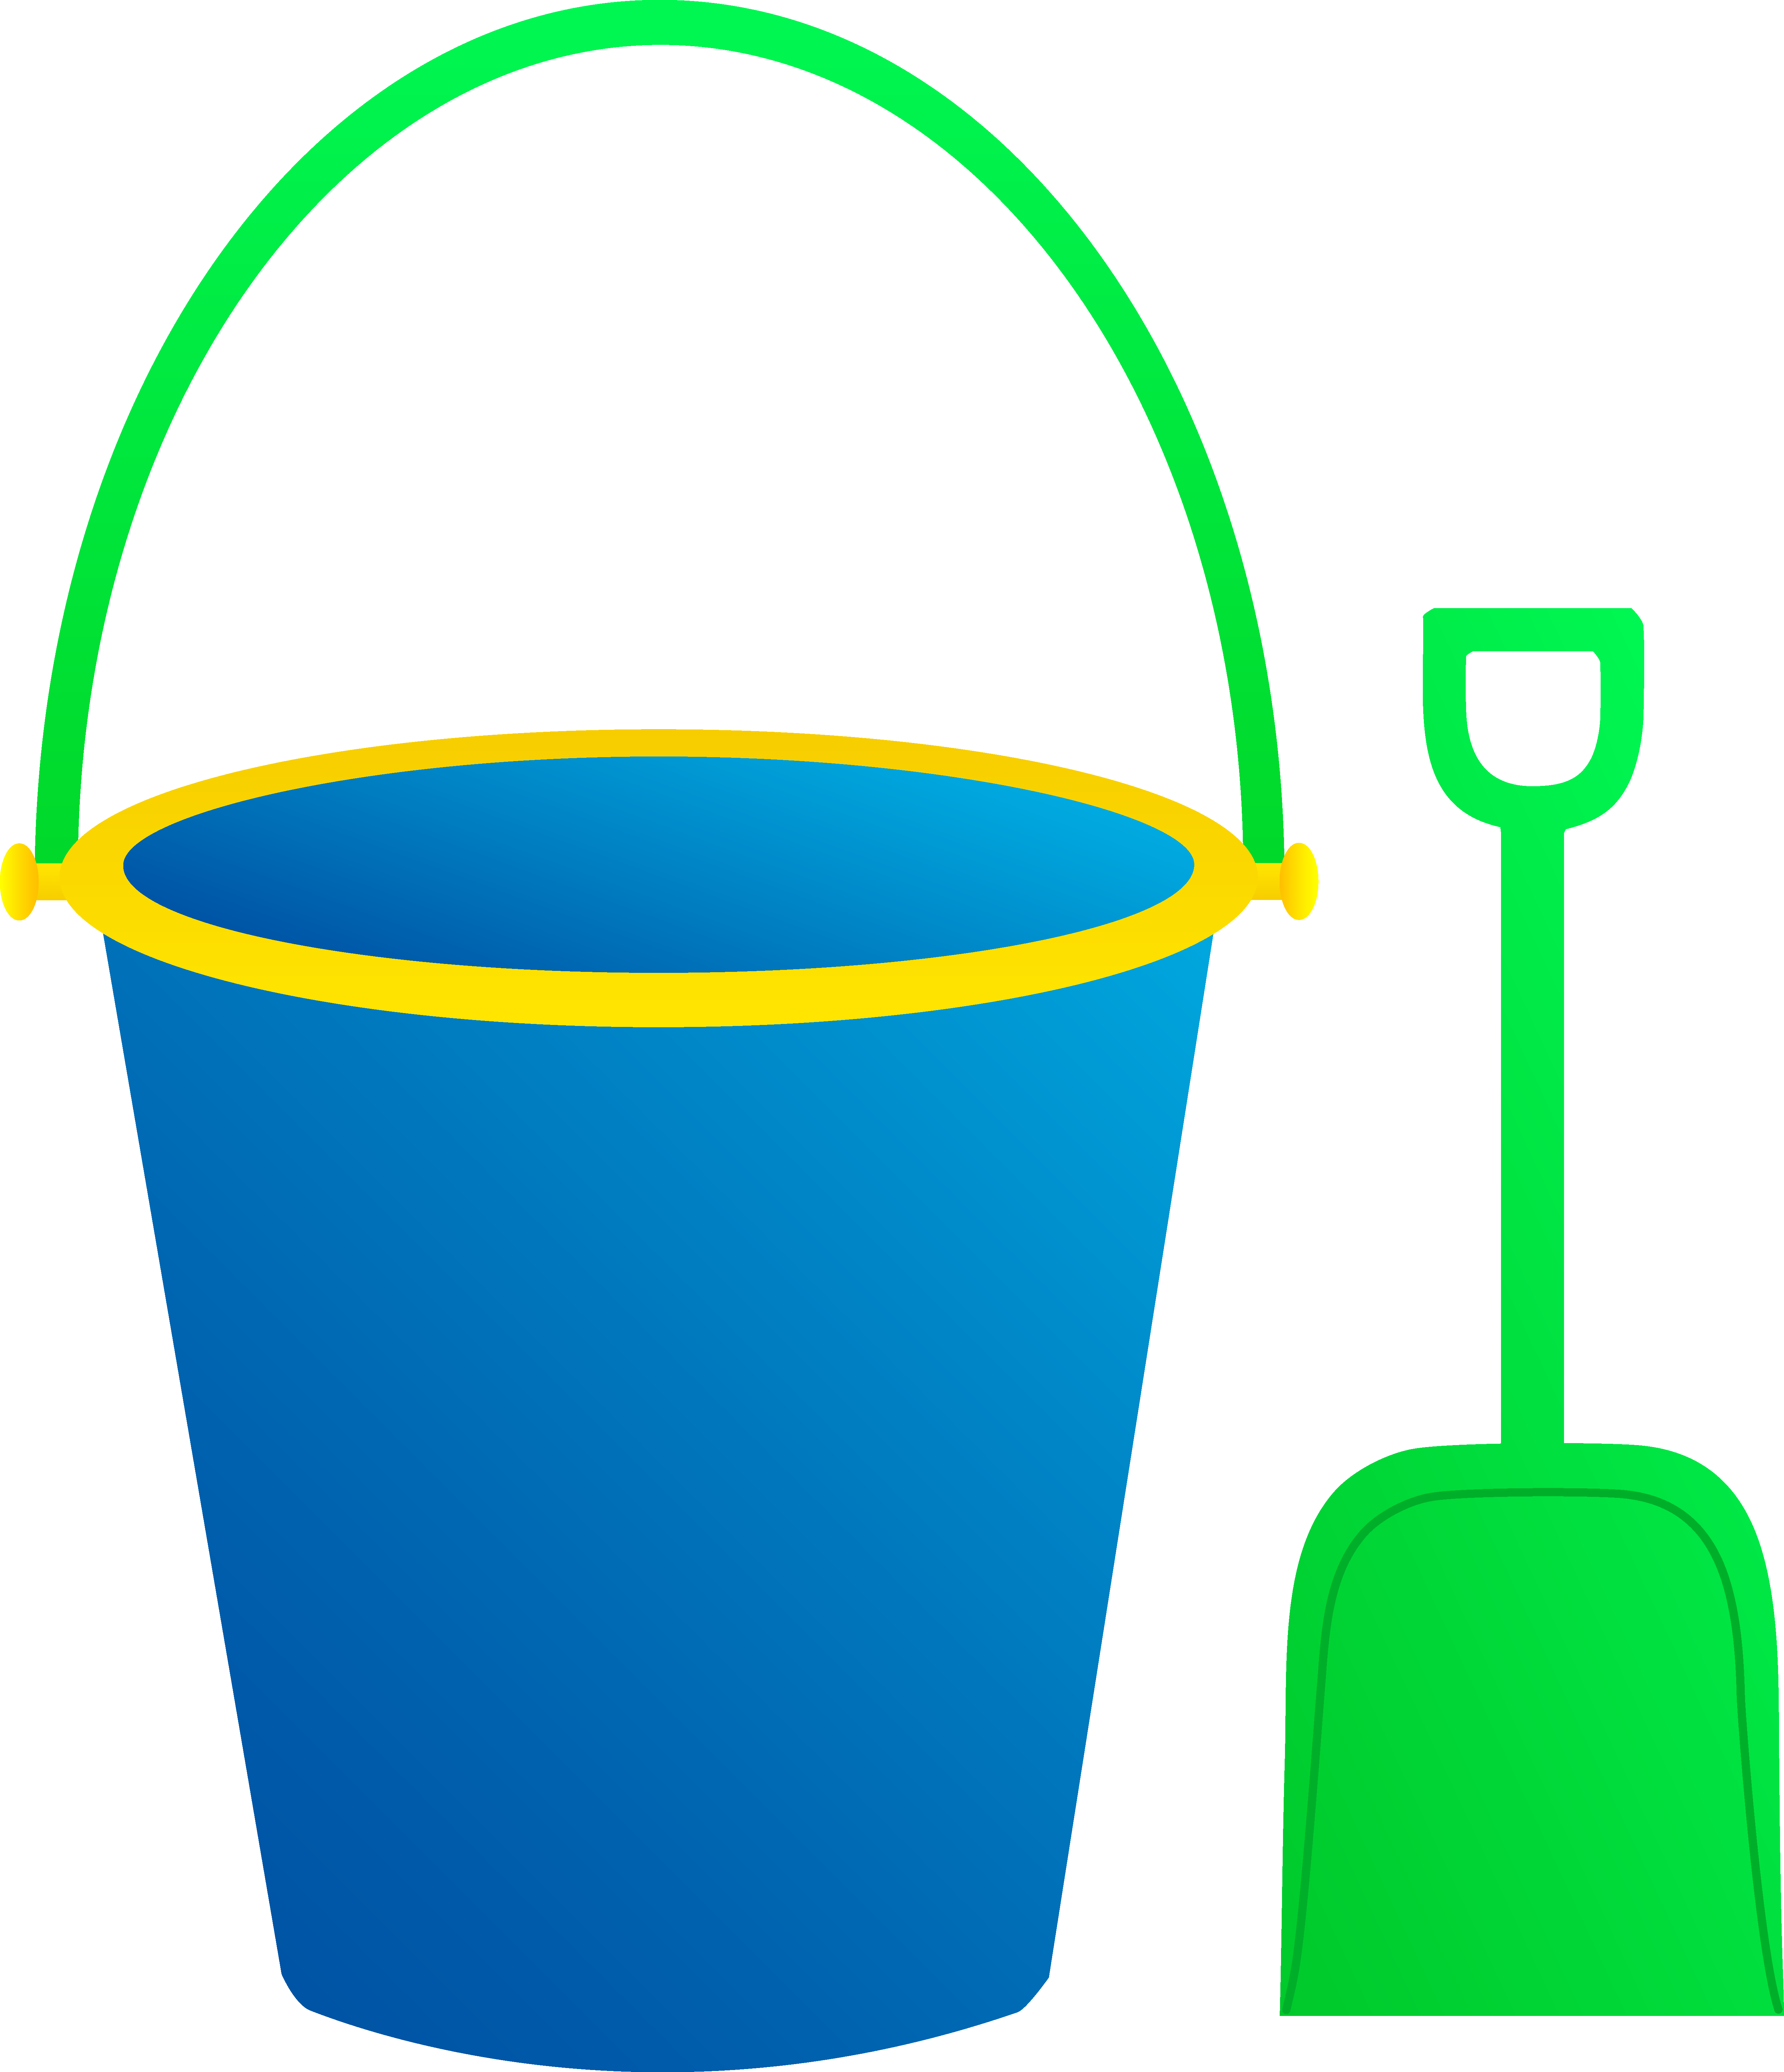 5409x6283 Blue Pail With Green Shovel